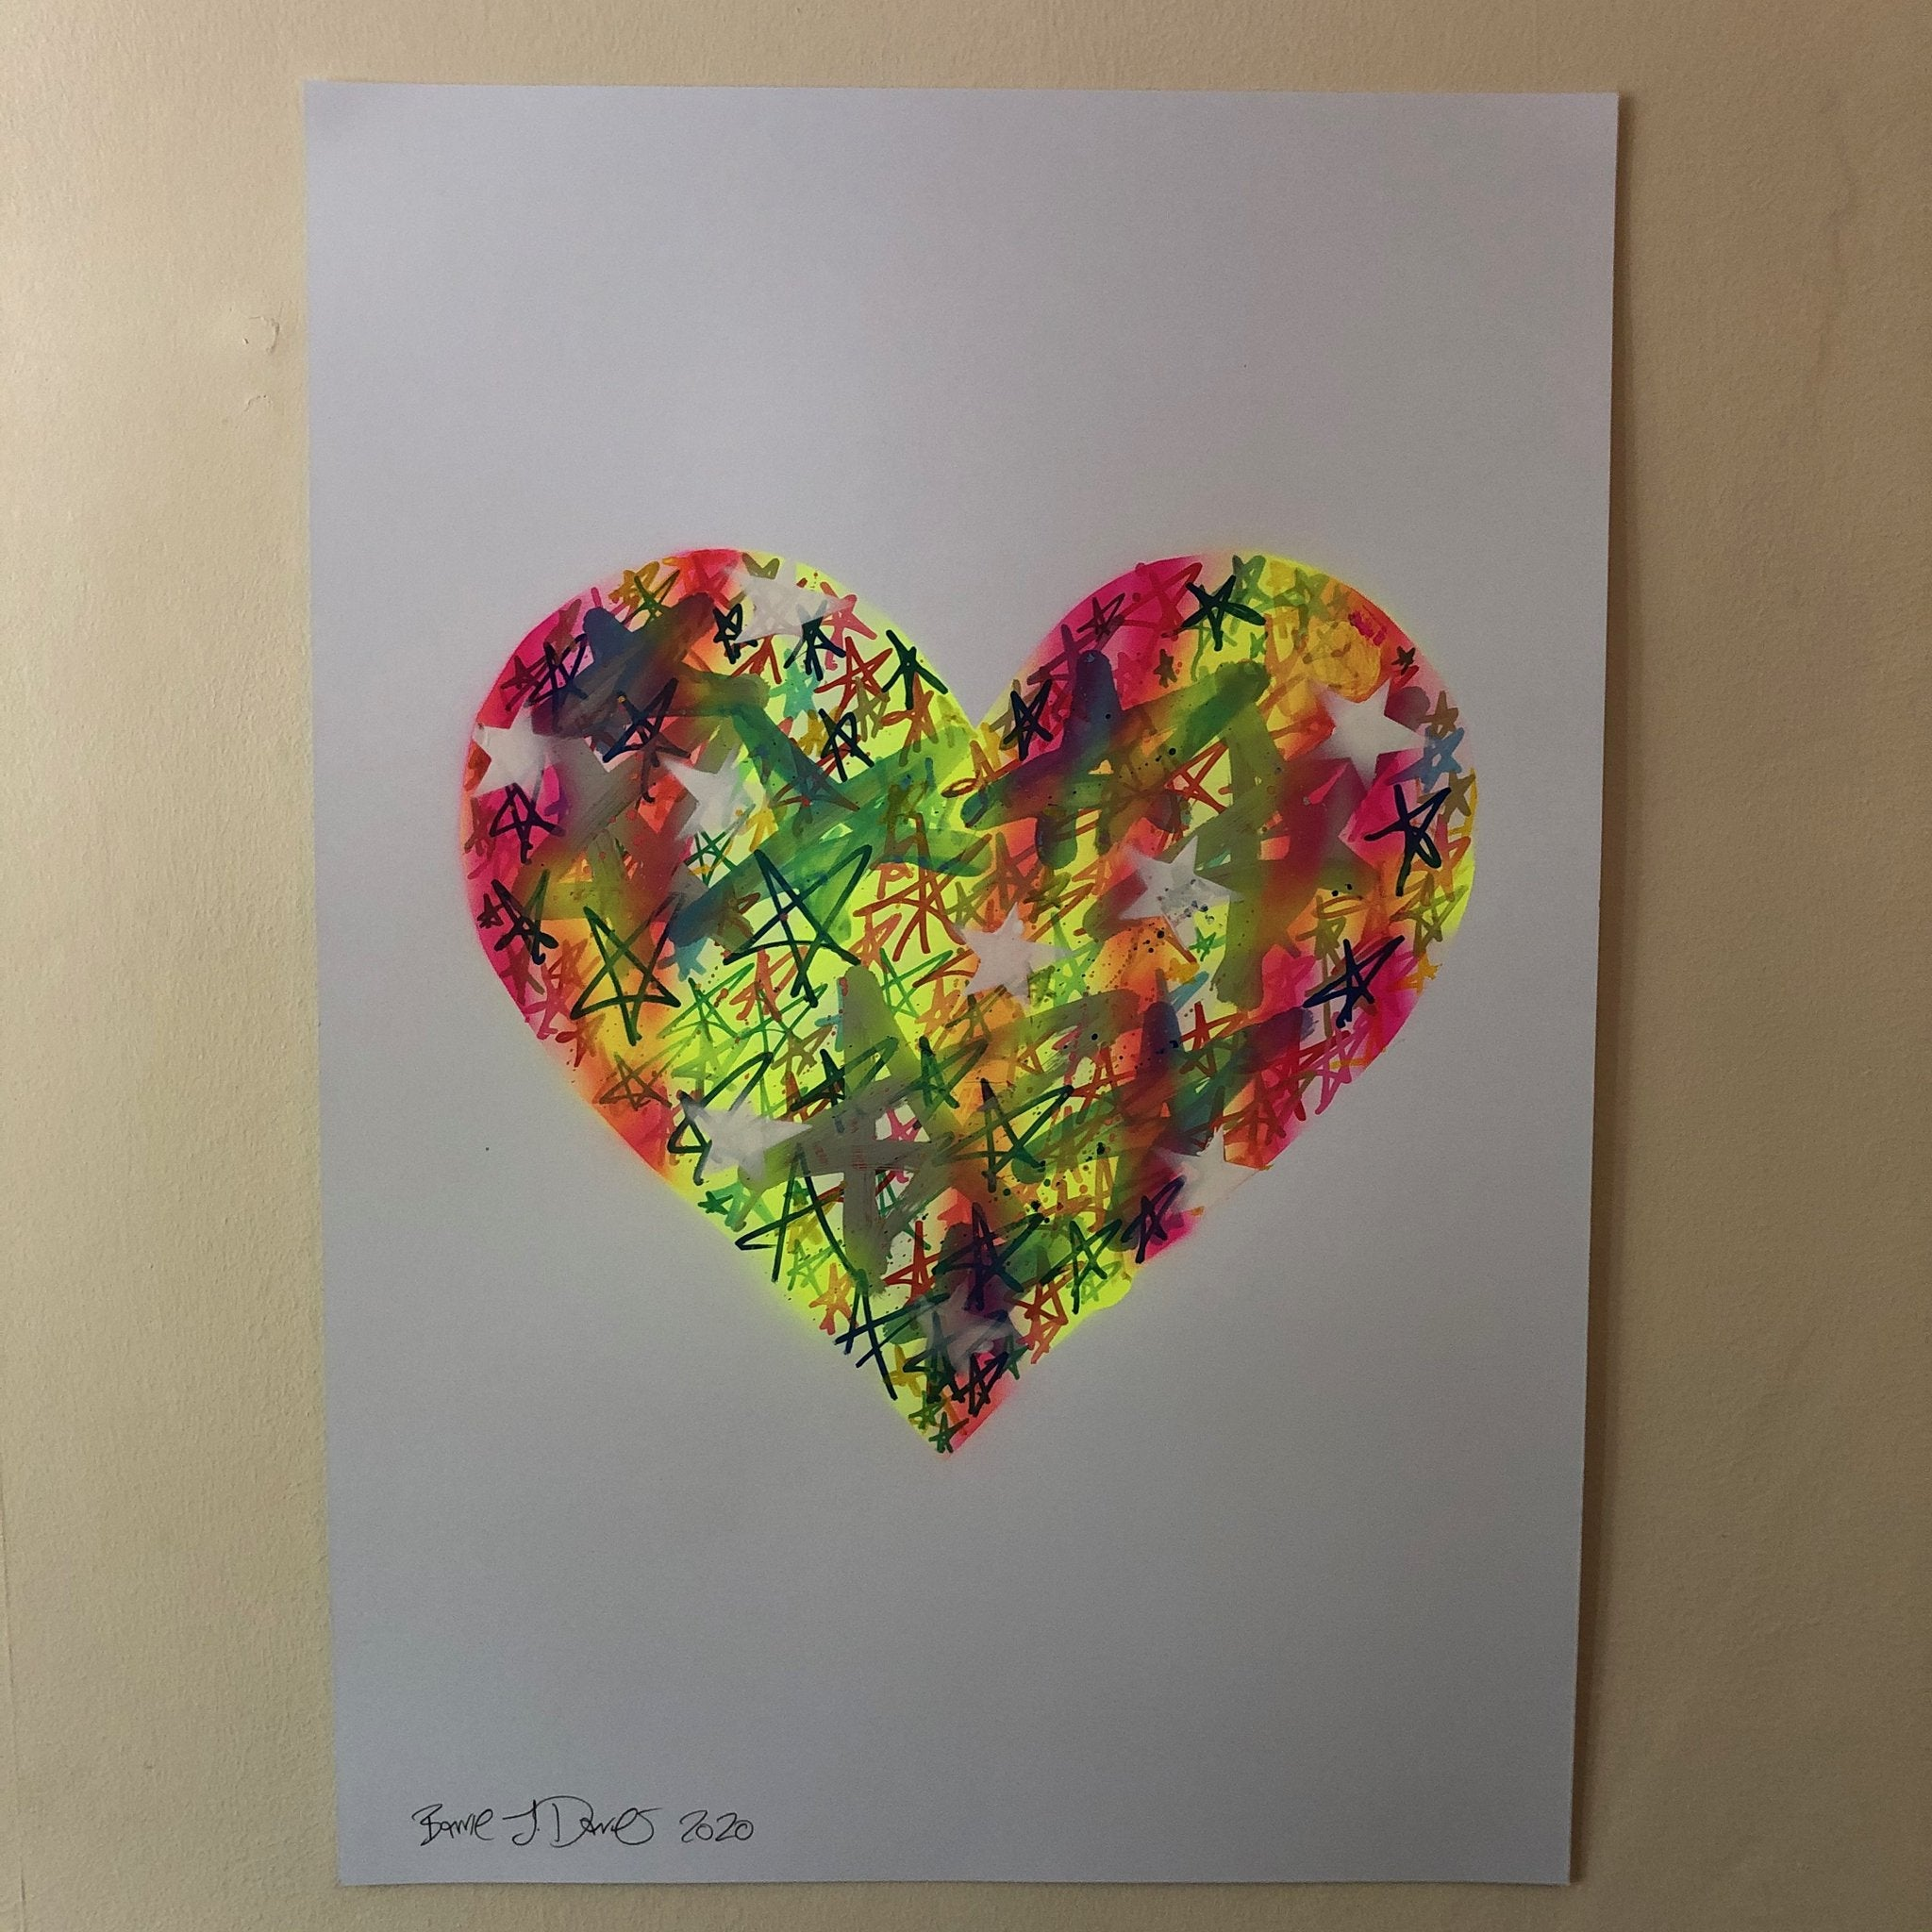 Love Heart drawing by Barrie J Davies 2020, Mixed media on Paper (unframed) A2 size 42cm x 59.4cm. Barrie J Davies is an Artist - Pop Art and Street art inspired Artist based in Brighton England UK - Paintings, Prints & Editions available.